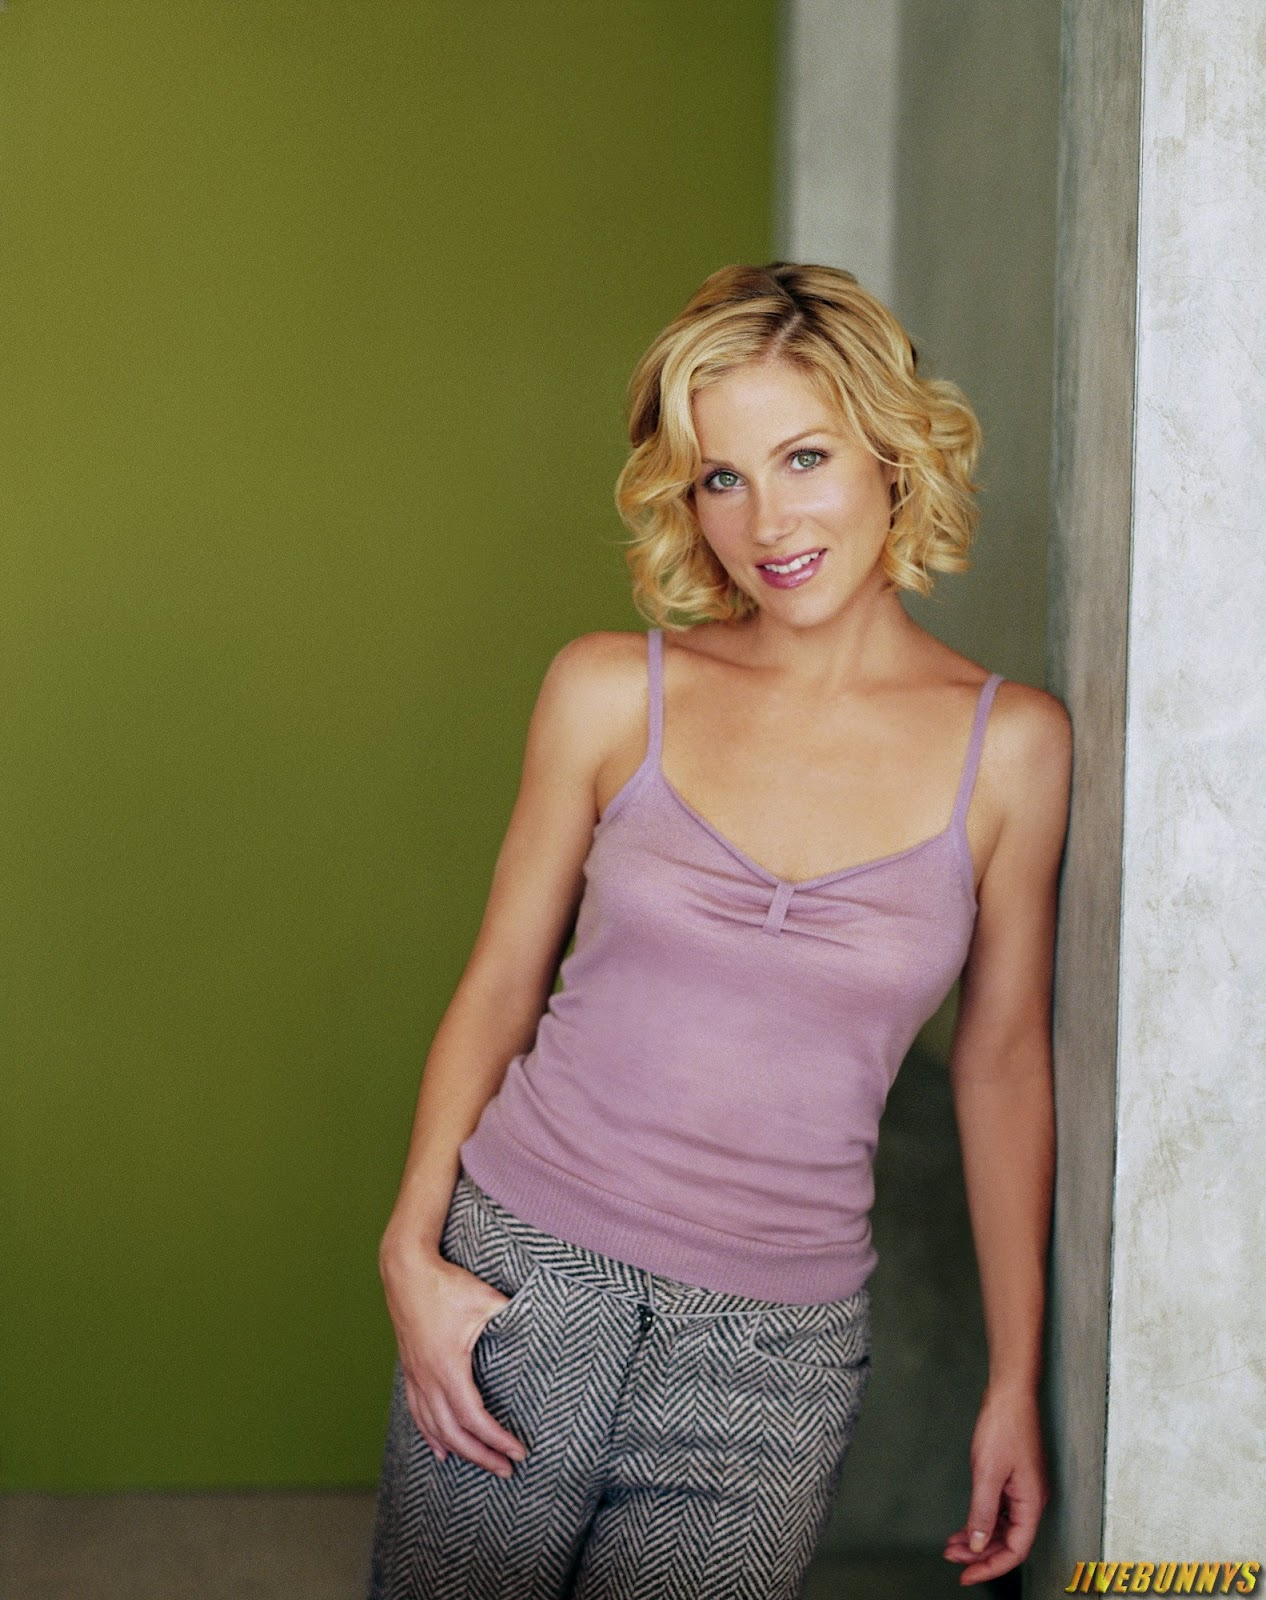 applegate online dating Christina applegate admits she dumped brad pitt for another guy — watch view gallery 12 photos alyssa montemurro share this article reddit.